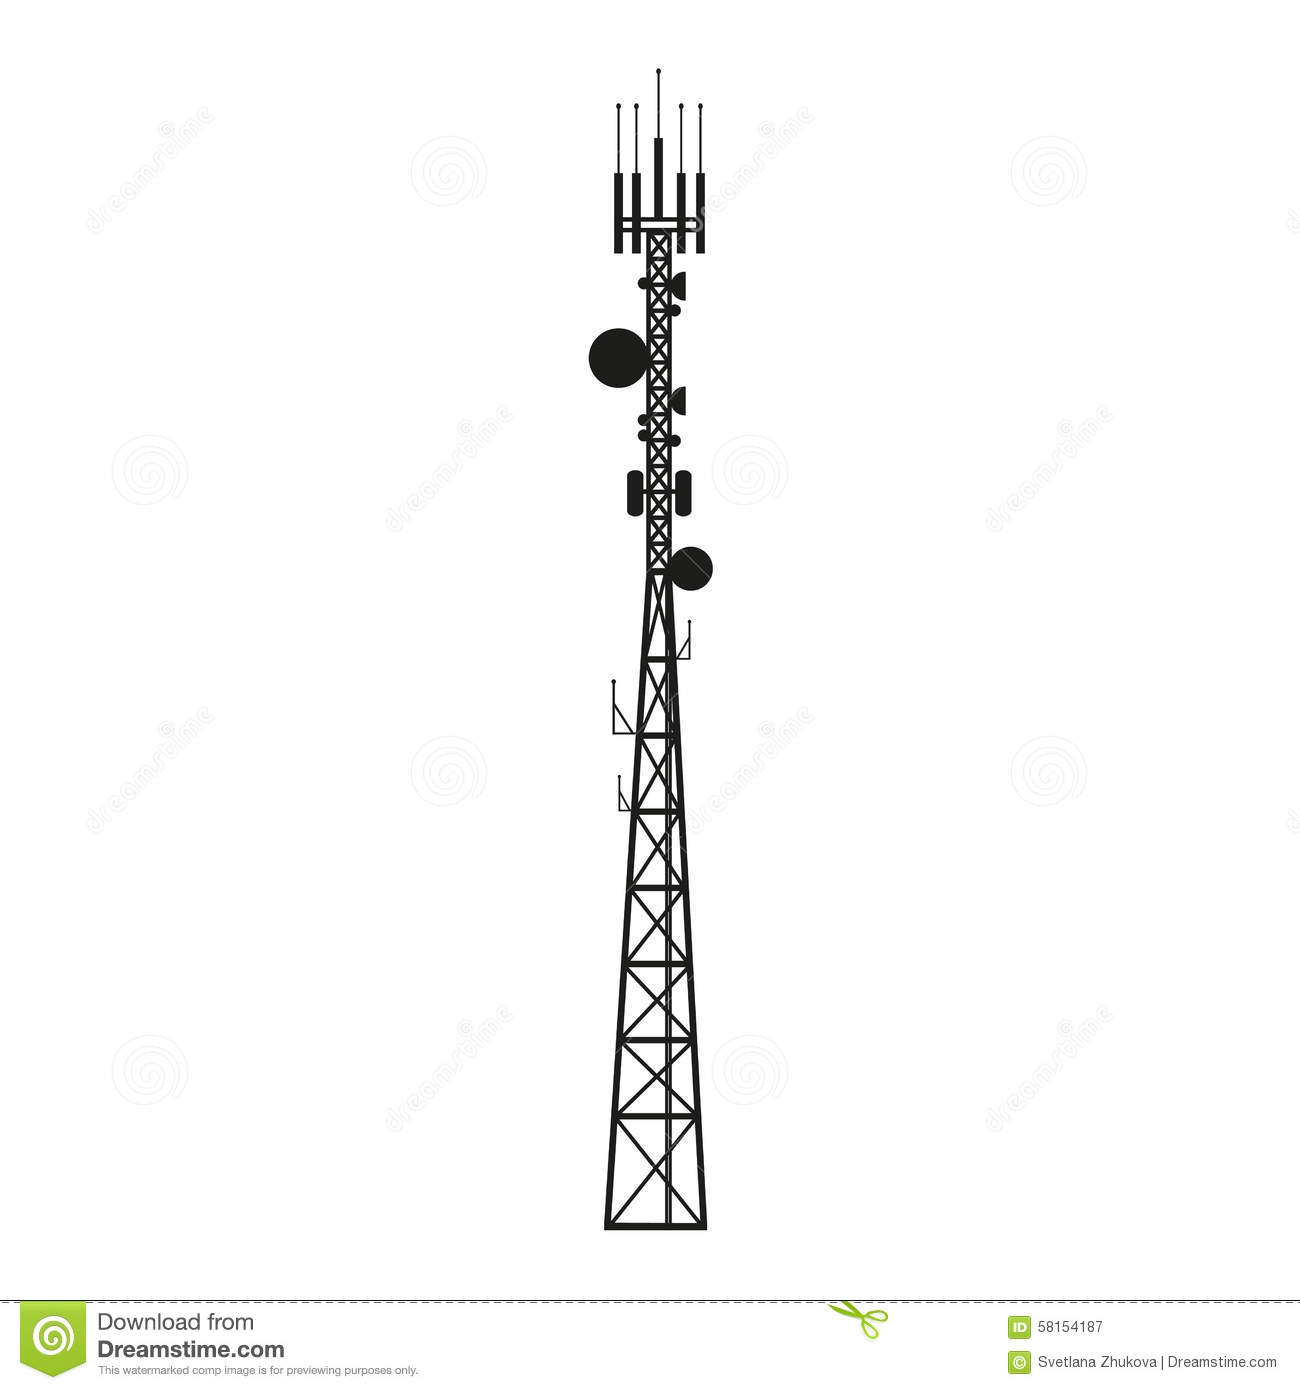 cellular phone tower signal diagram clipsal 3 phase 5 pin plug wiring australia telecommunication antenna mast or mobile stock